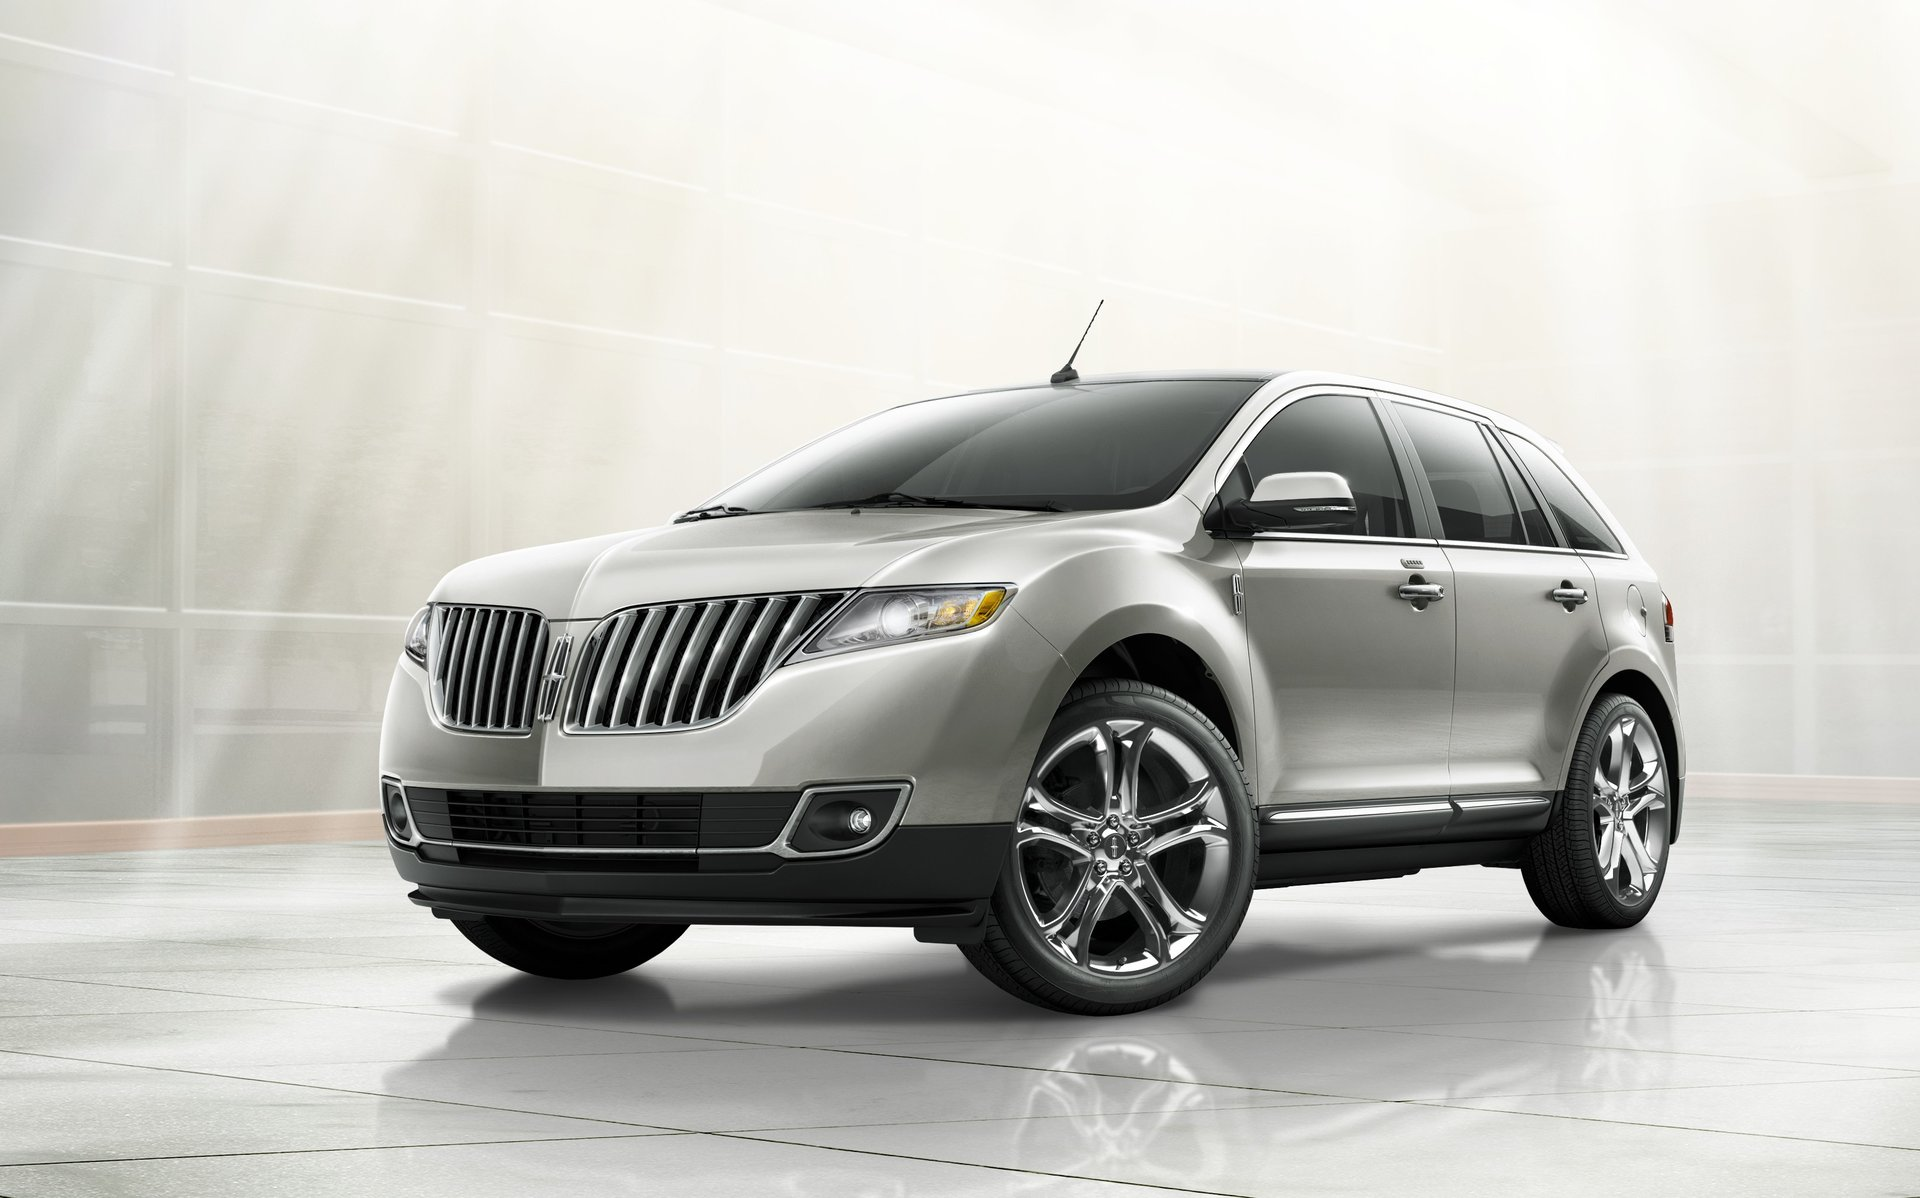 new and used lincoln mkx prices photos reviews specs the car connection. Black Bedroom Furniture Sets. Home Design Ideas